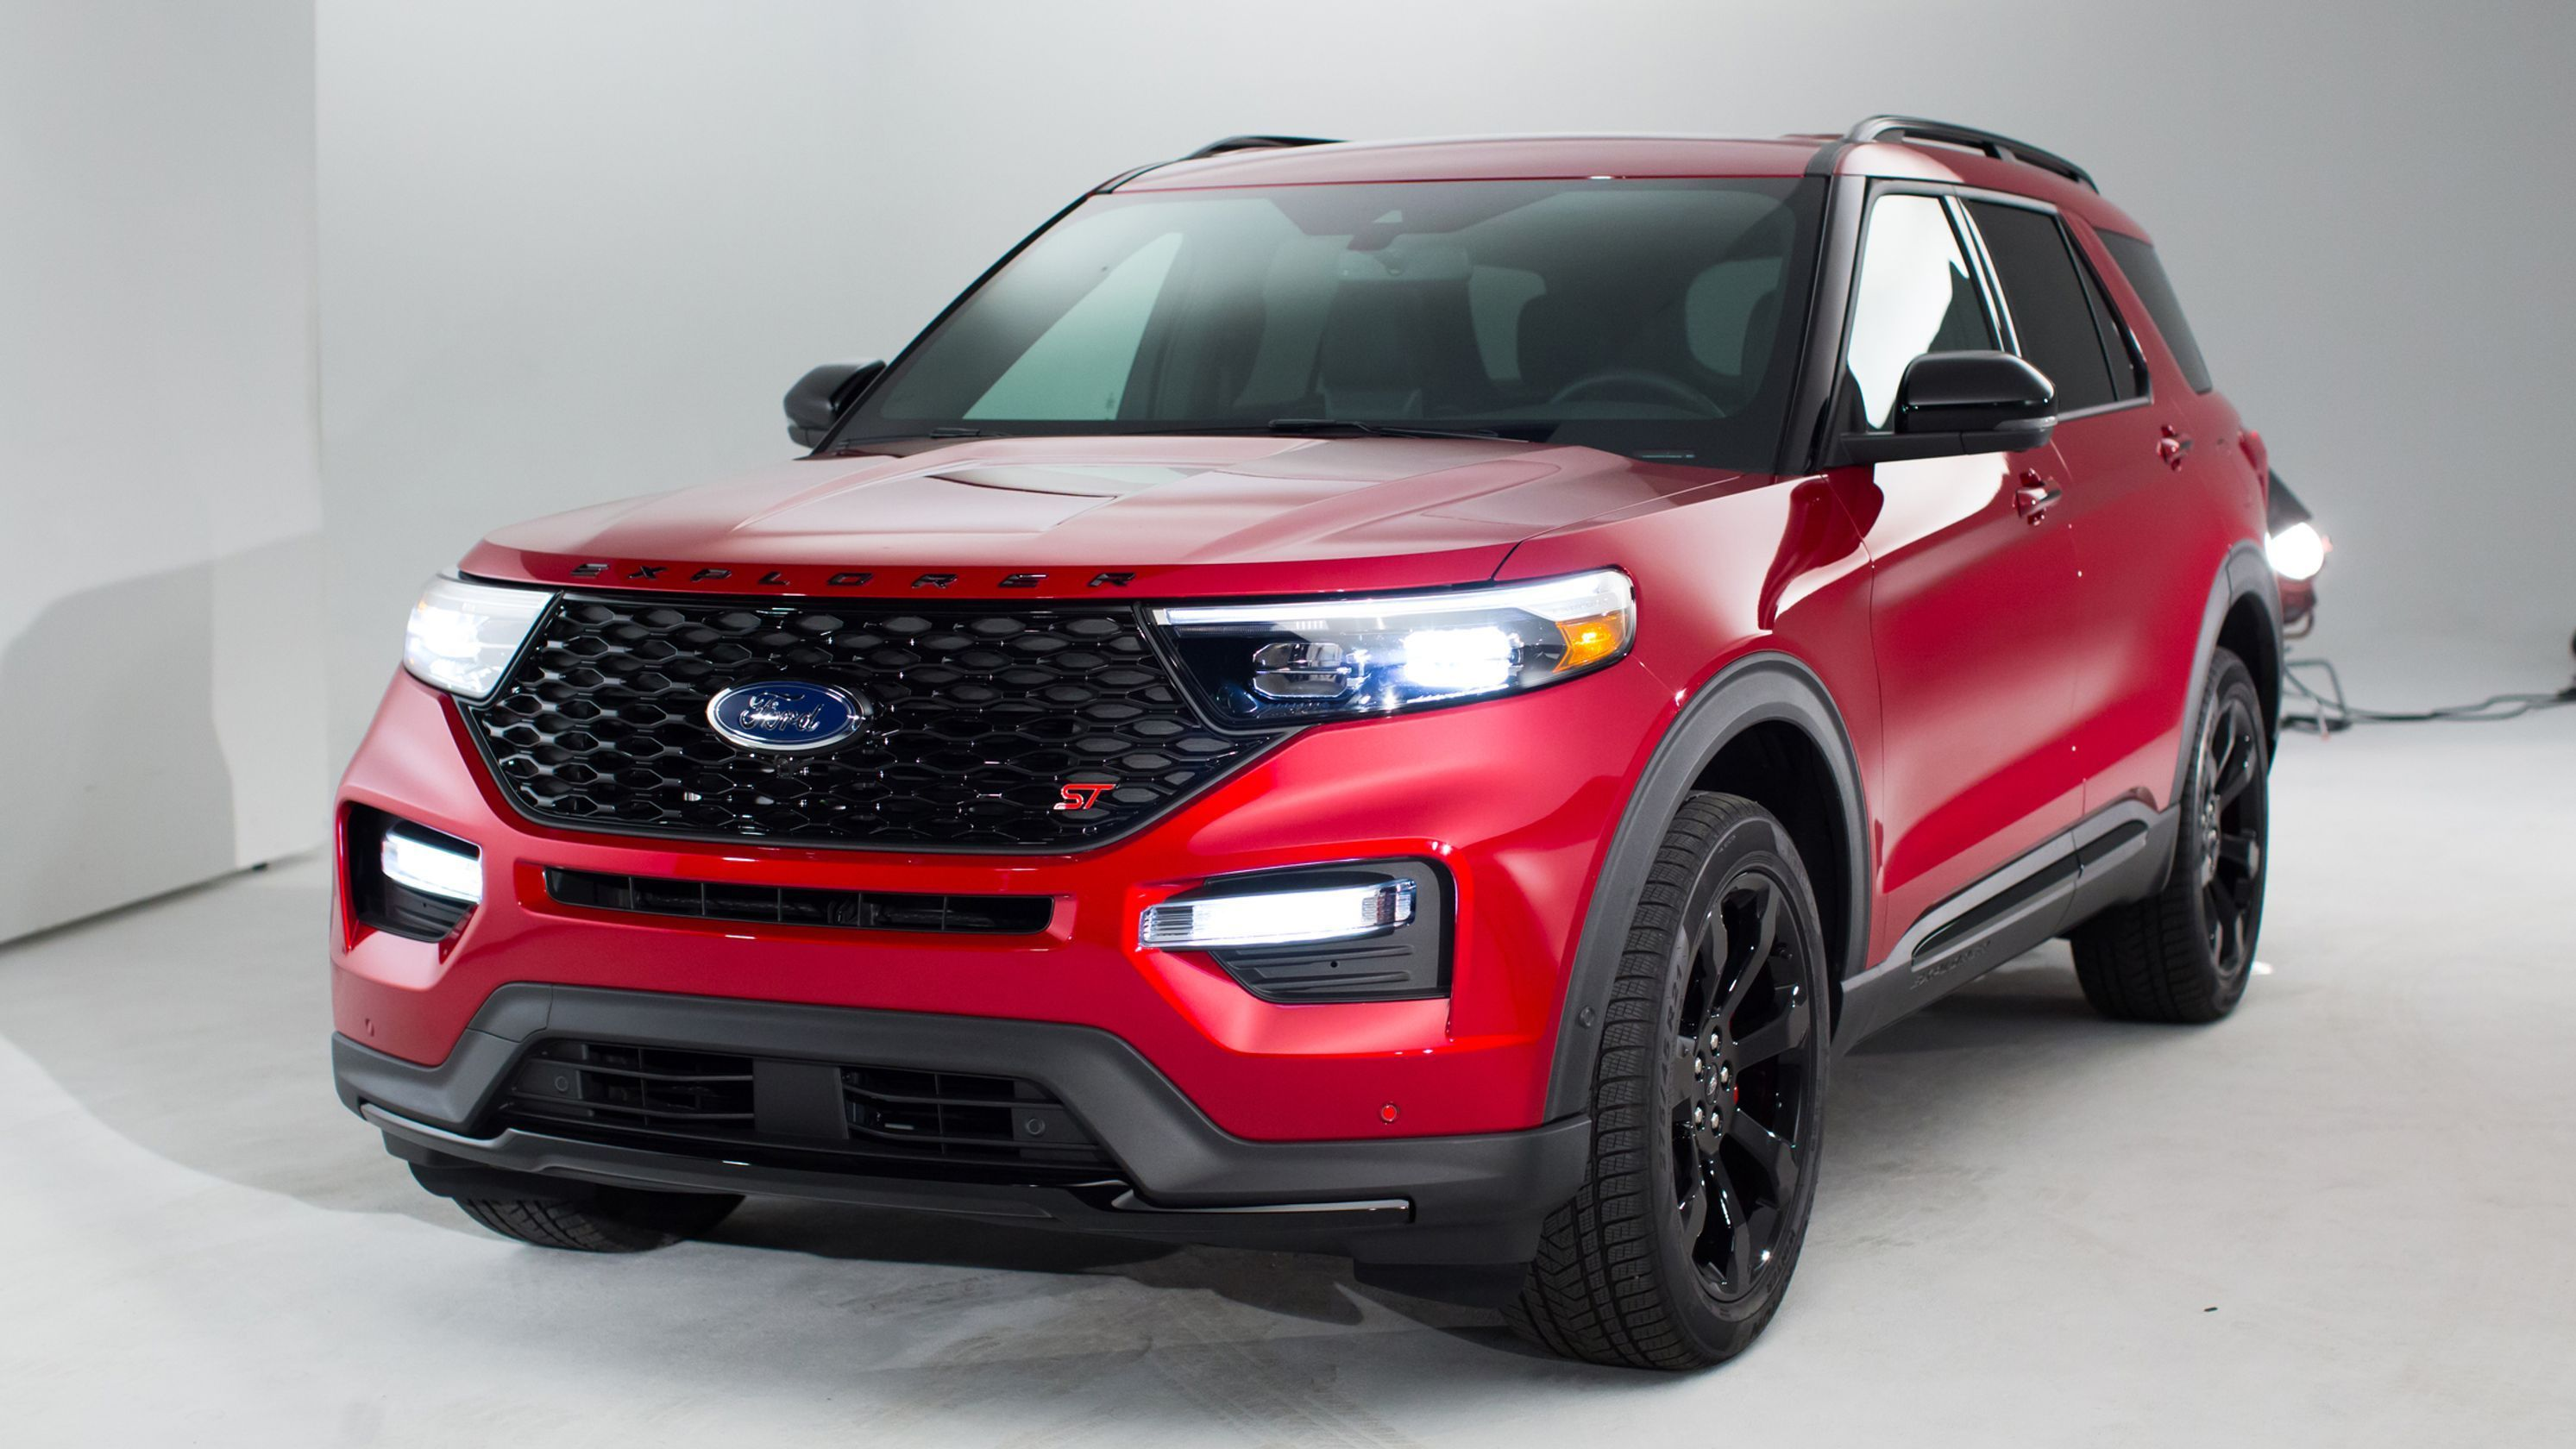 The Usa News Source Us News World News Stories Videos And More Ford Explorer Detroit Auto Show Ford